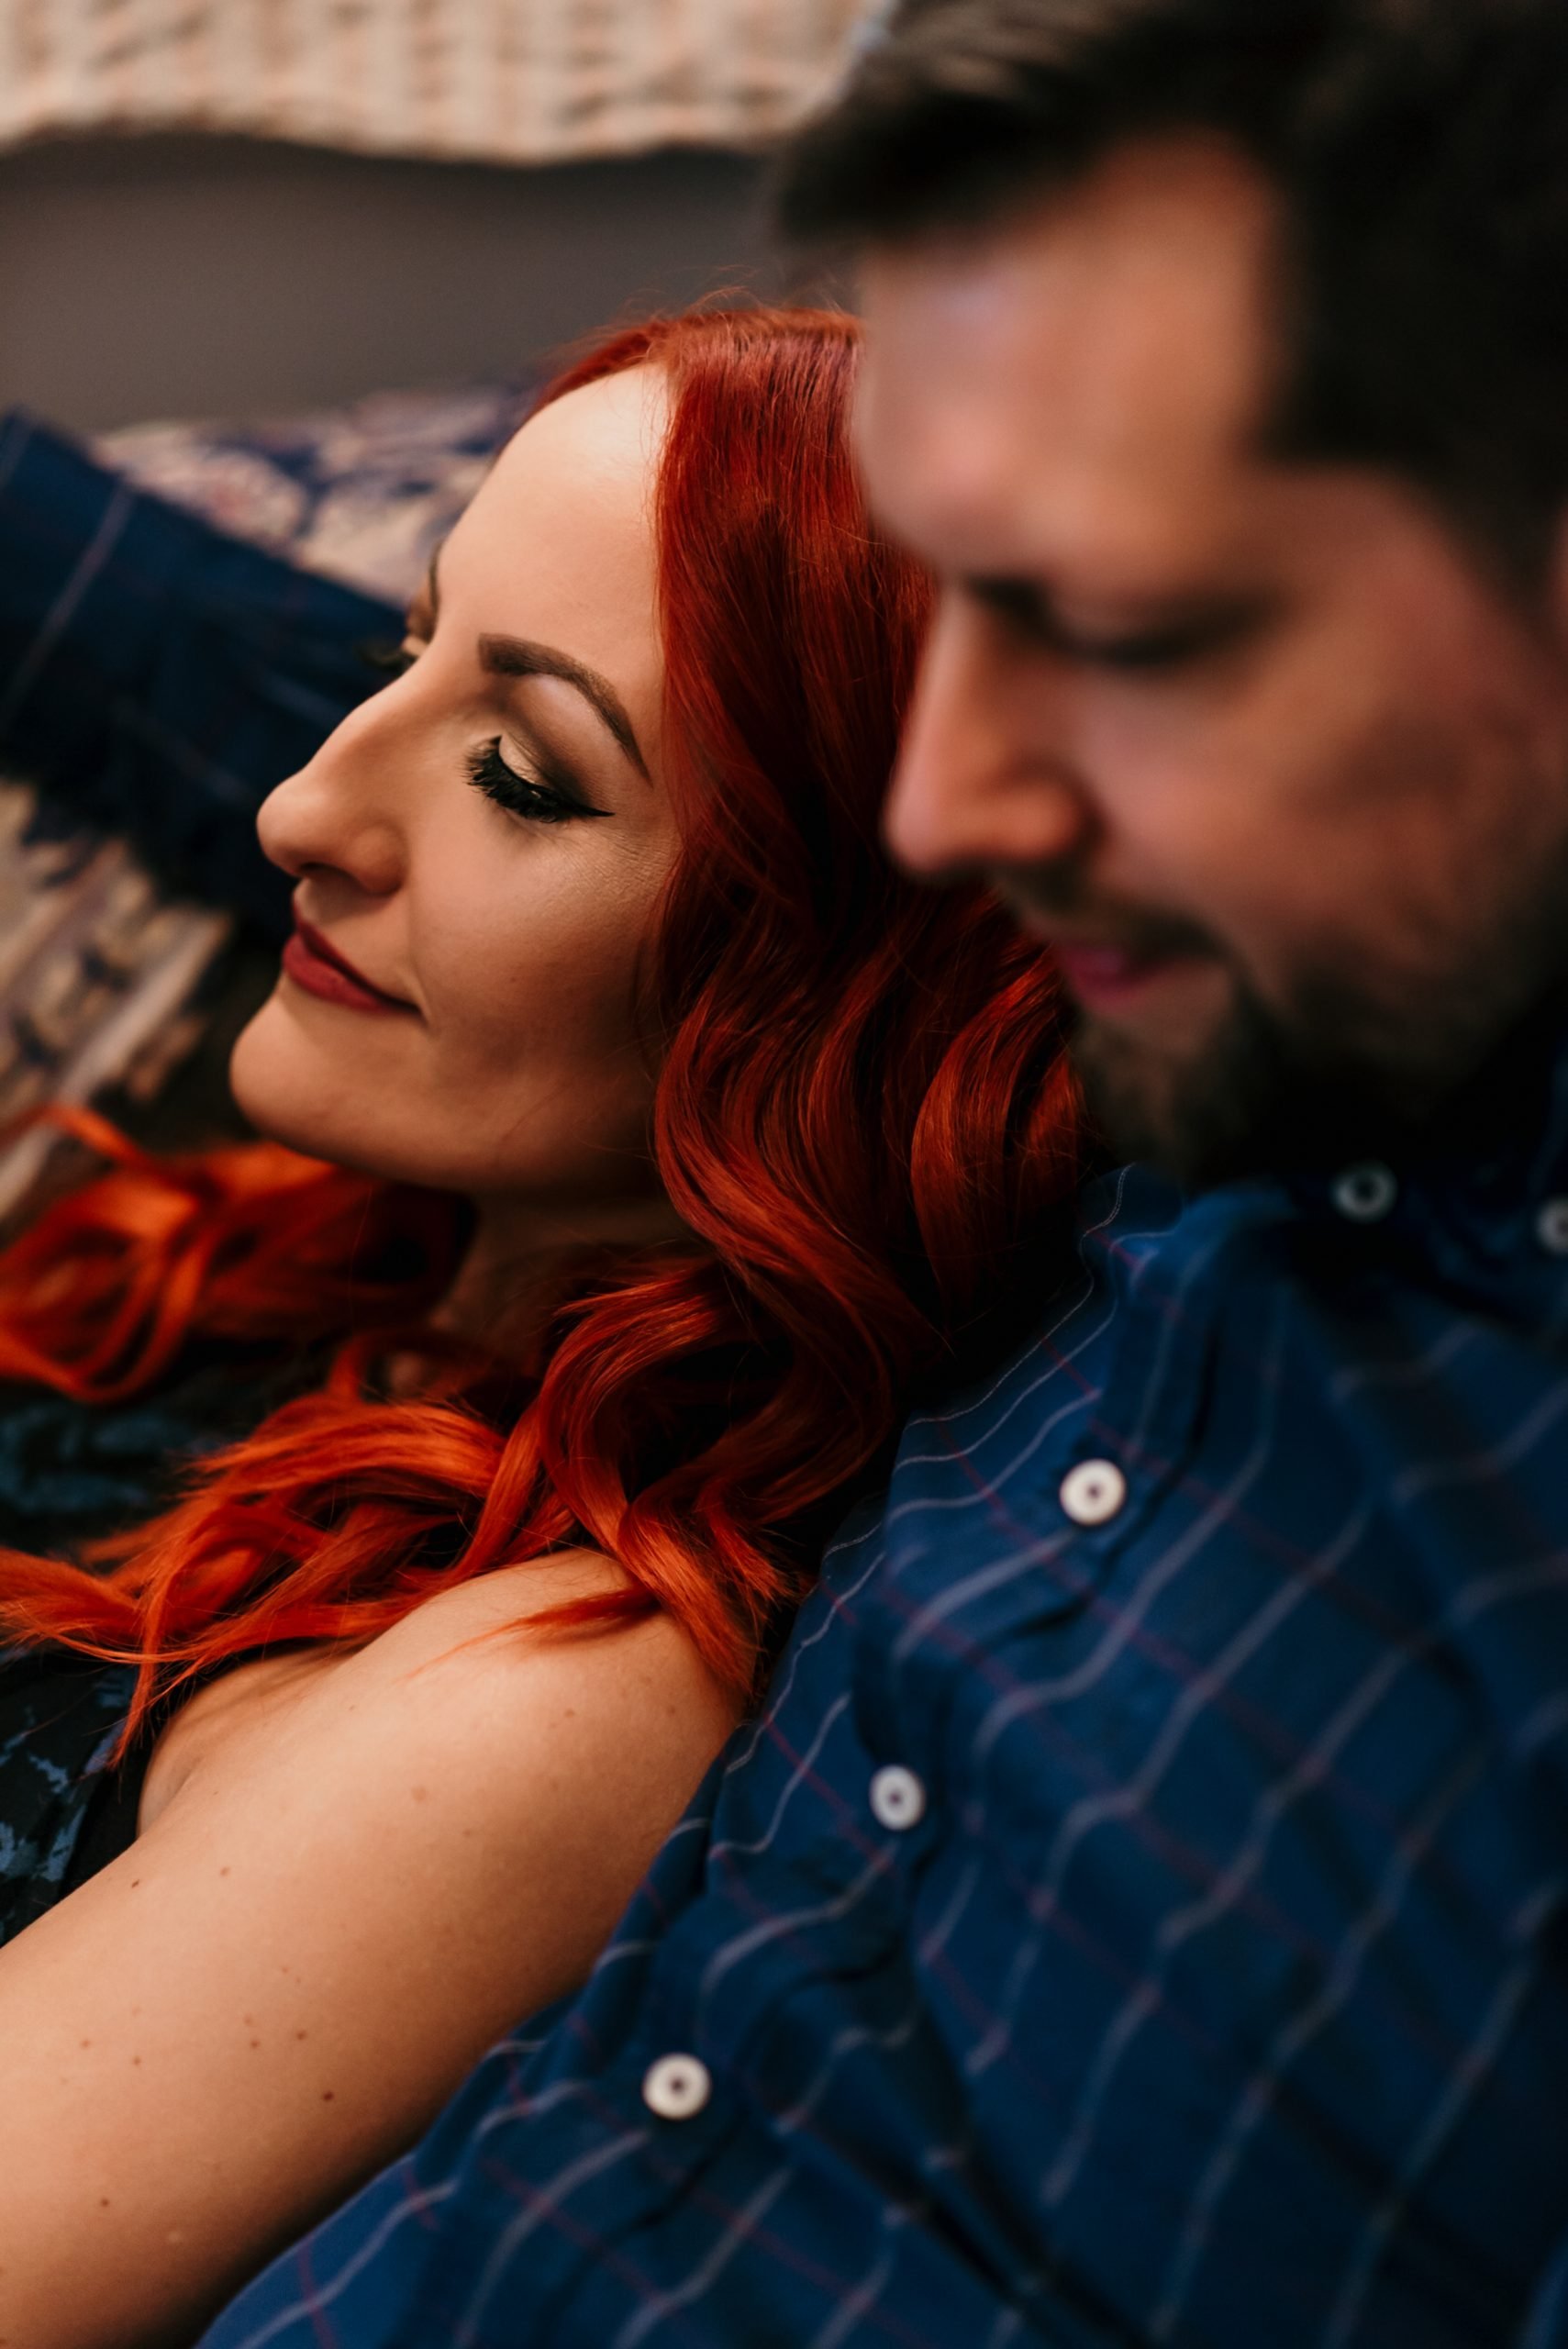 indoor-couples-photo-session-suess-moments-nyc-photographer